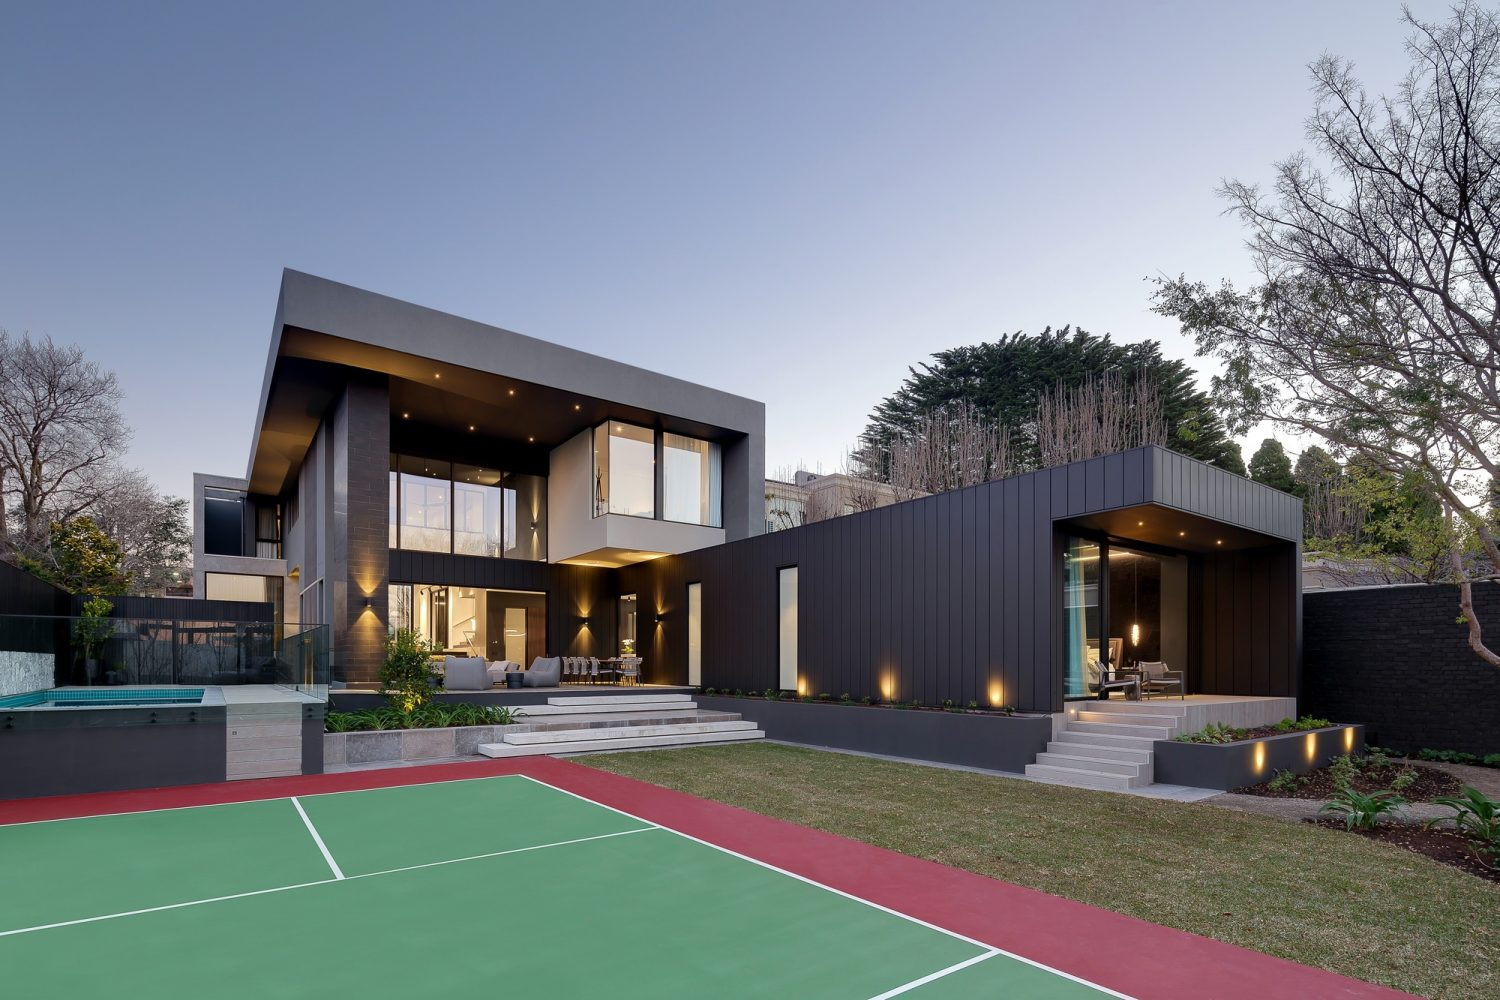 The J House by Wolf Architects